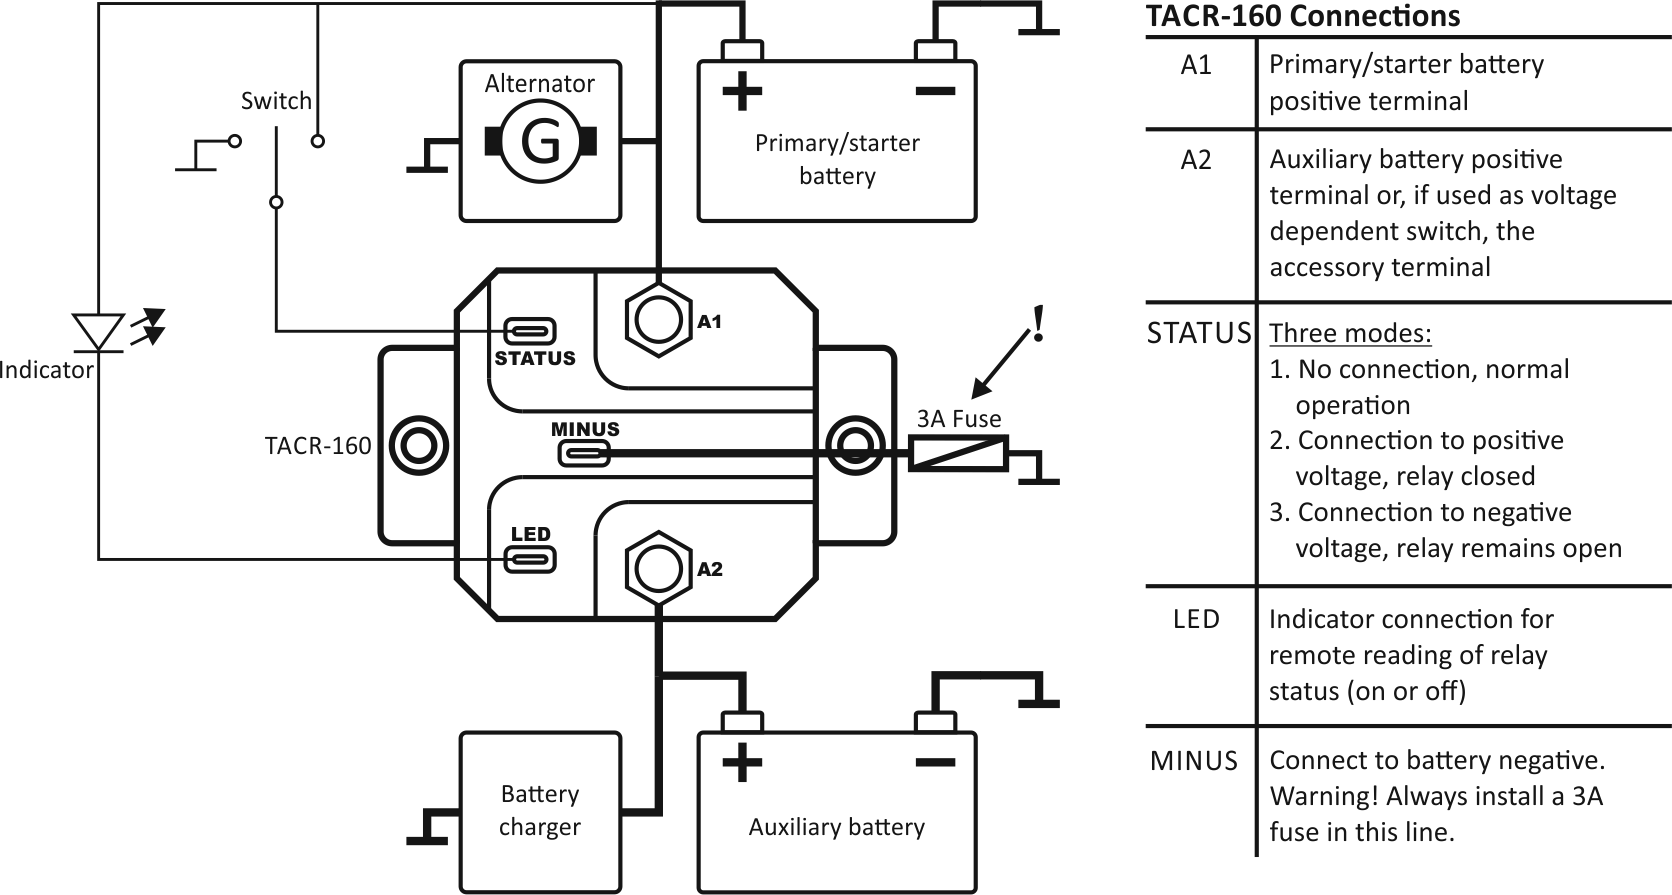 Automatic Charging Relay Wiring Diagram - Fusebox and Wiring Diagram  layout-chaos - layout-chaos.haskee.itdiagram database - Haskee.